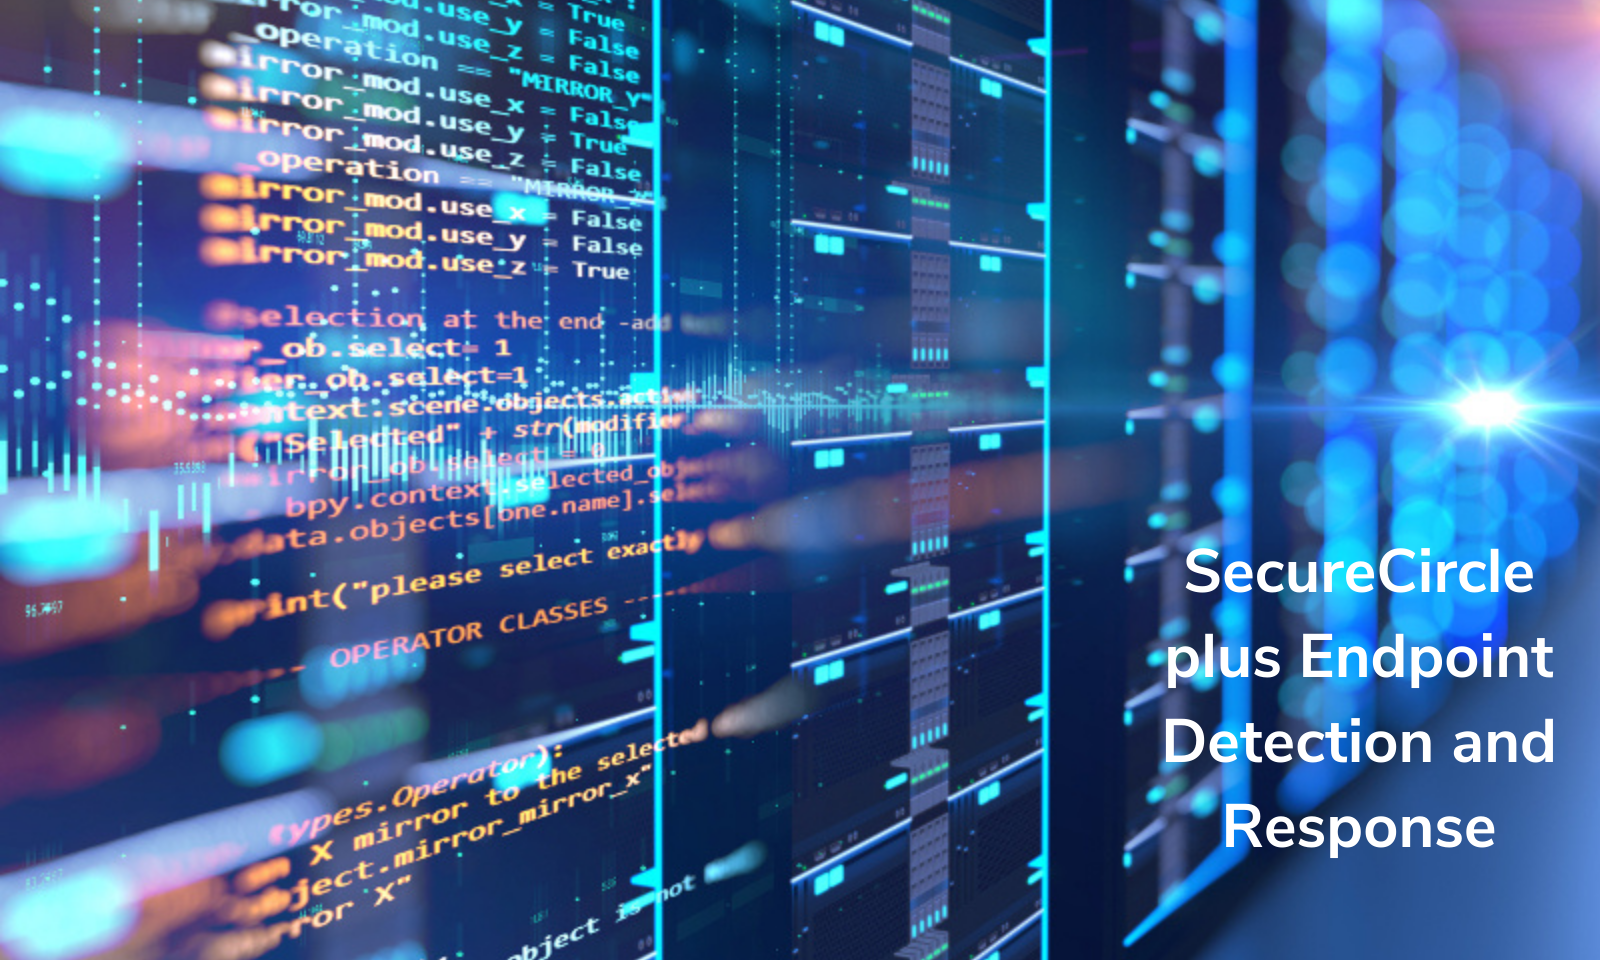 SecureCircle plus Endpoint Detection and Response